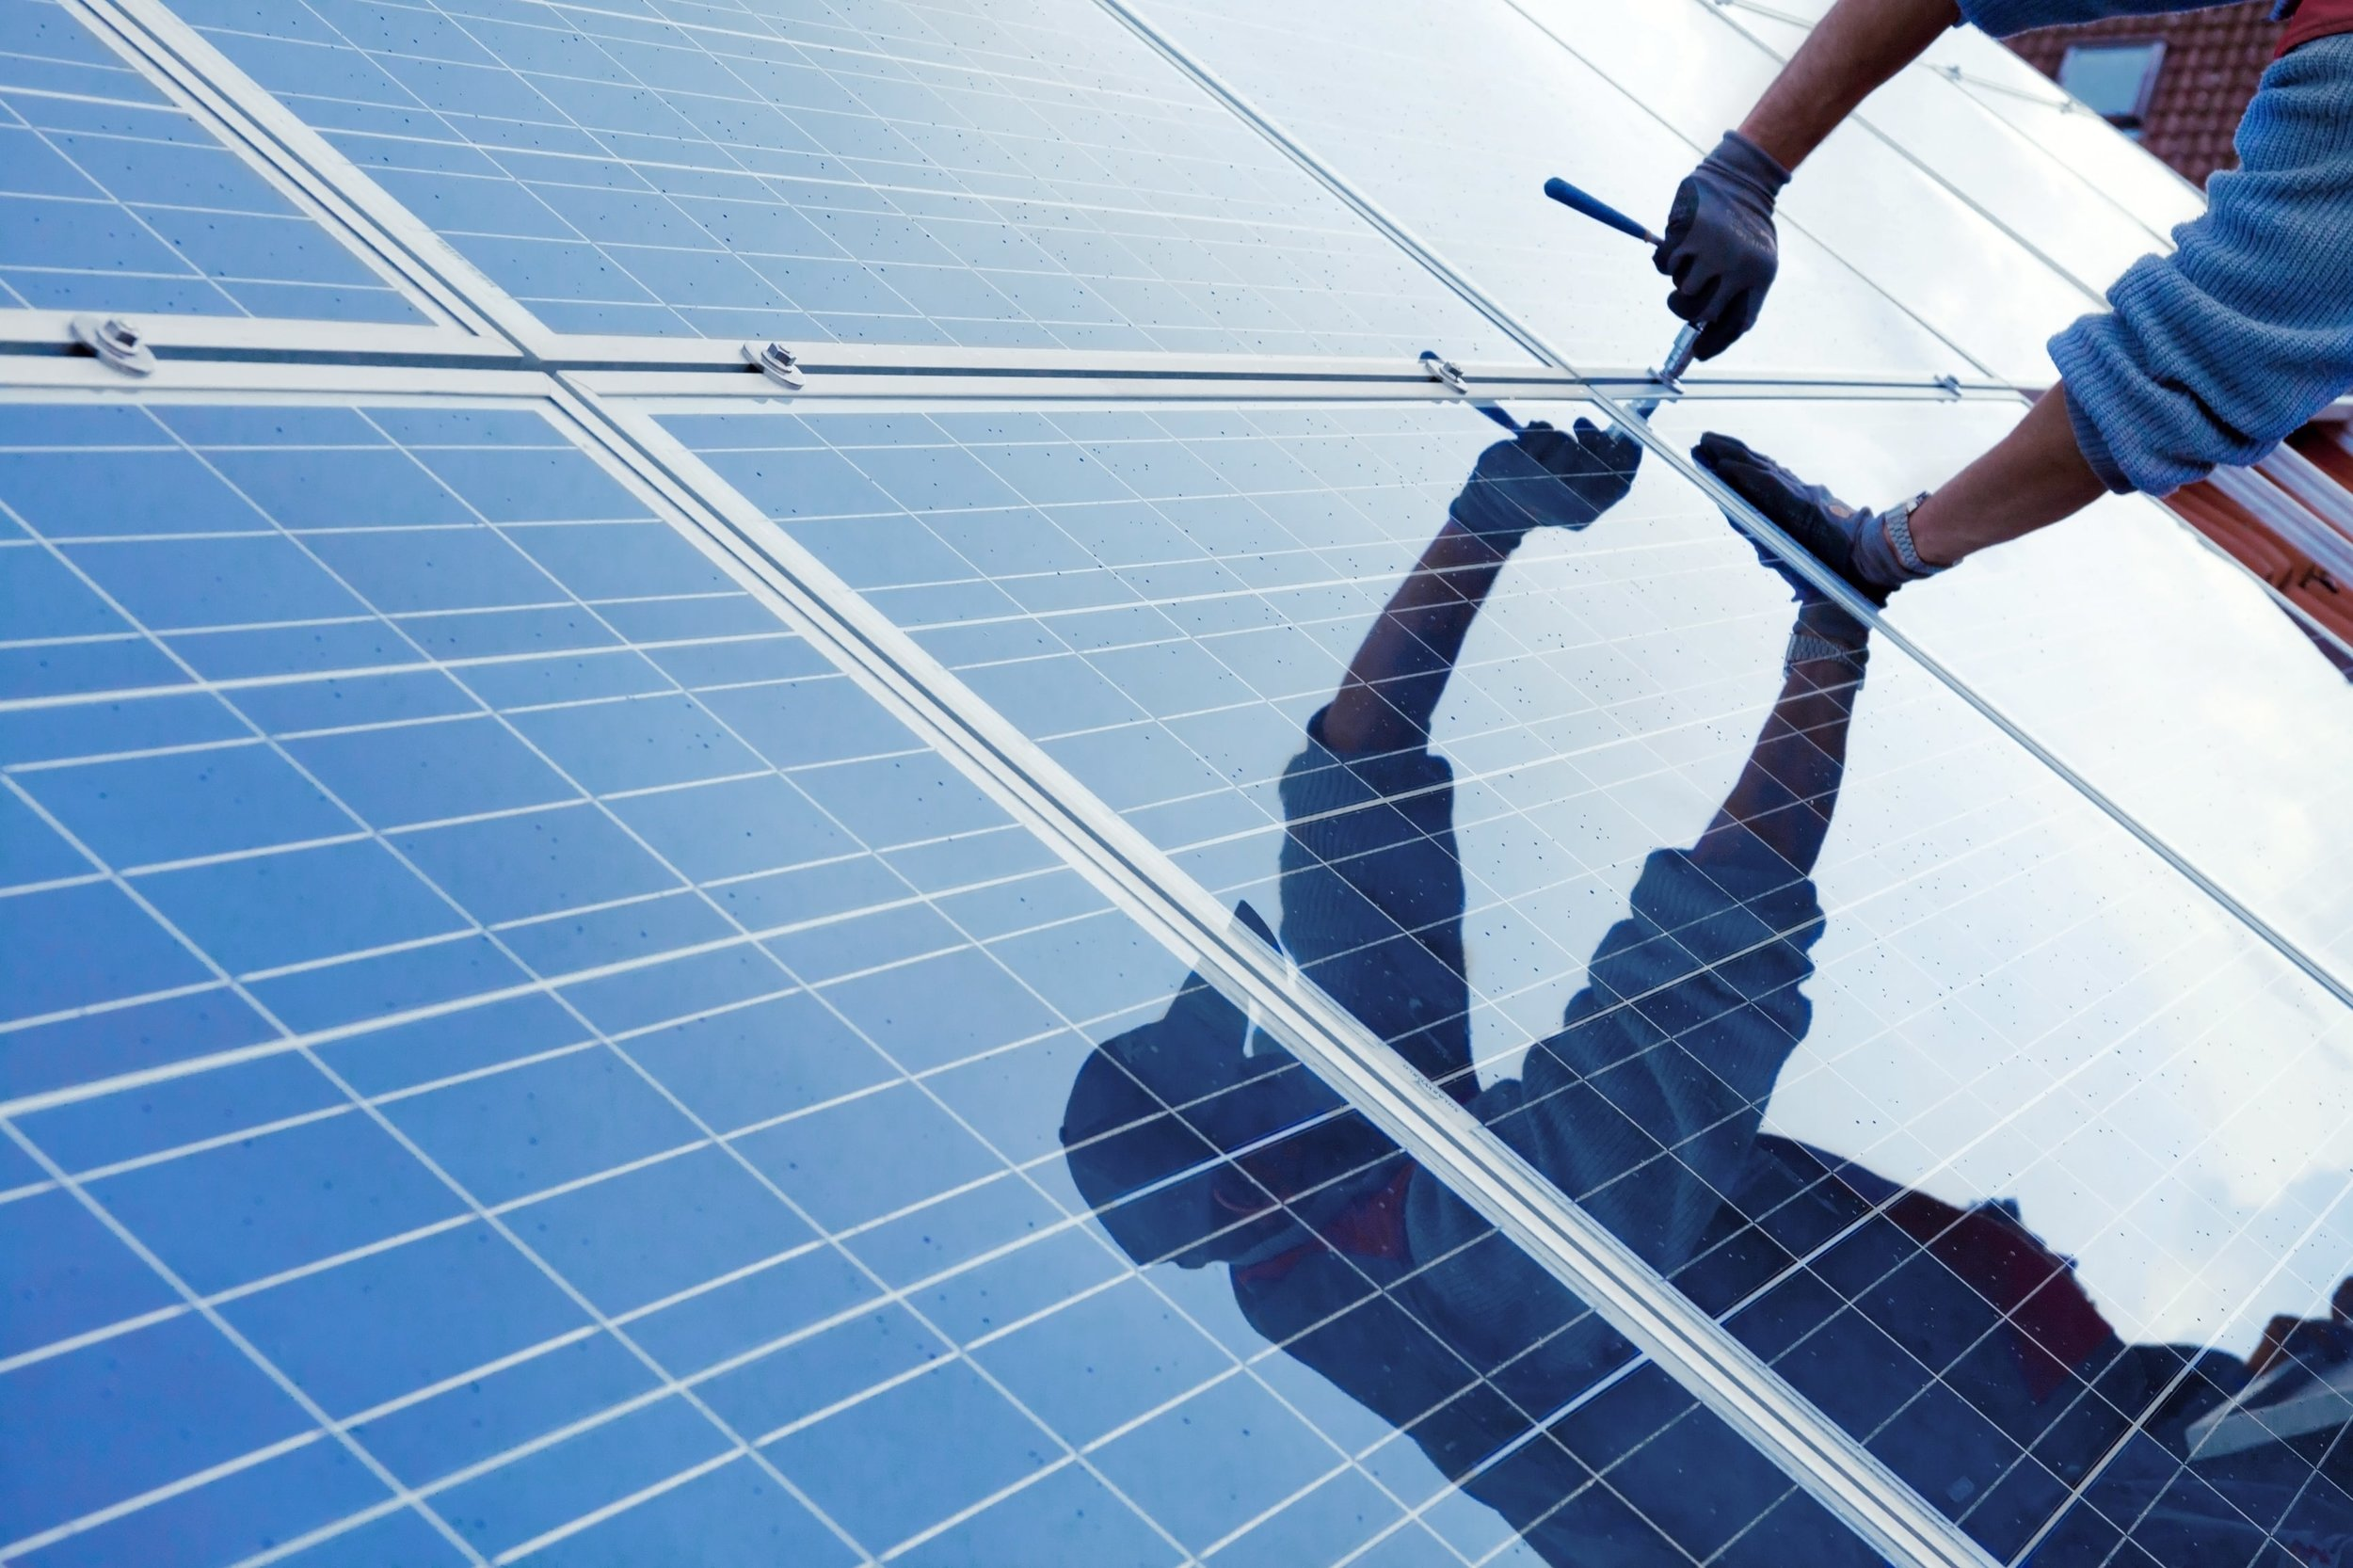 3. Installation - There's nothing more exciting than installation day! Your solar panels will be up and ready to generate power often in one day! Afterwards, we'll walk you through the system and show you how it all works.